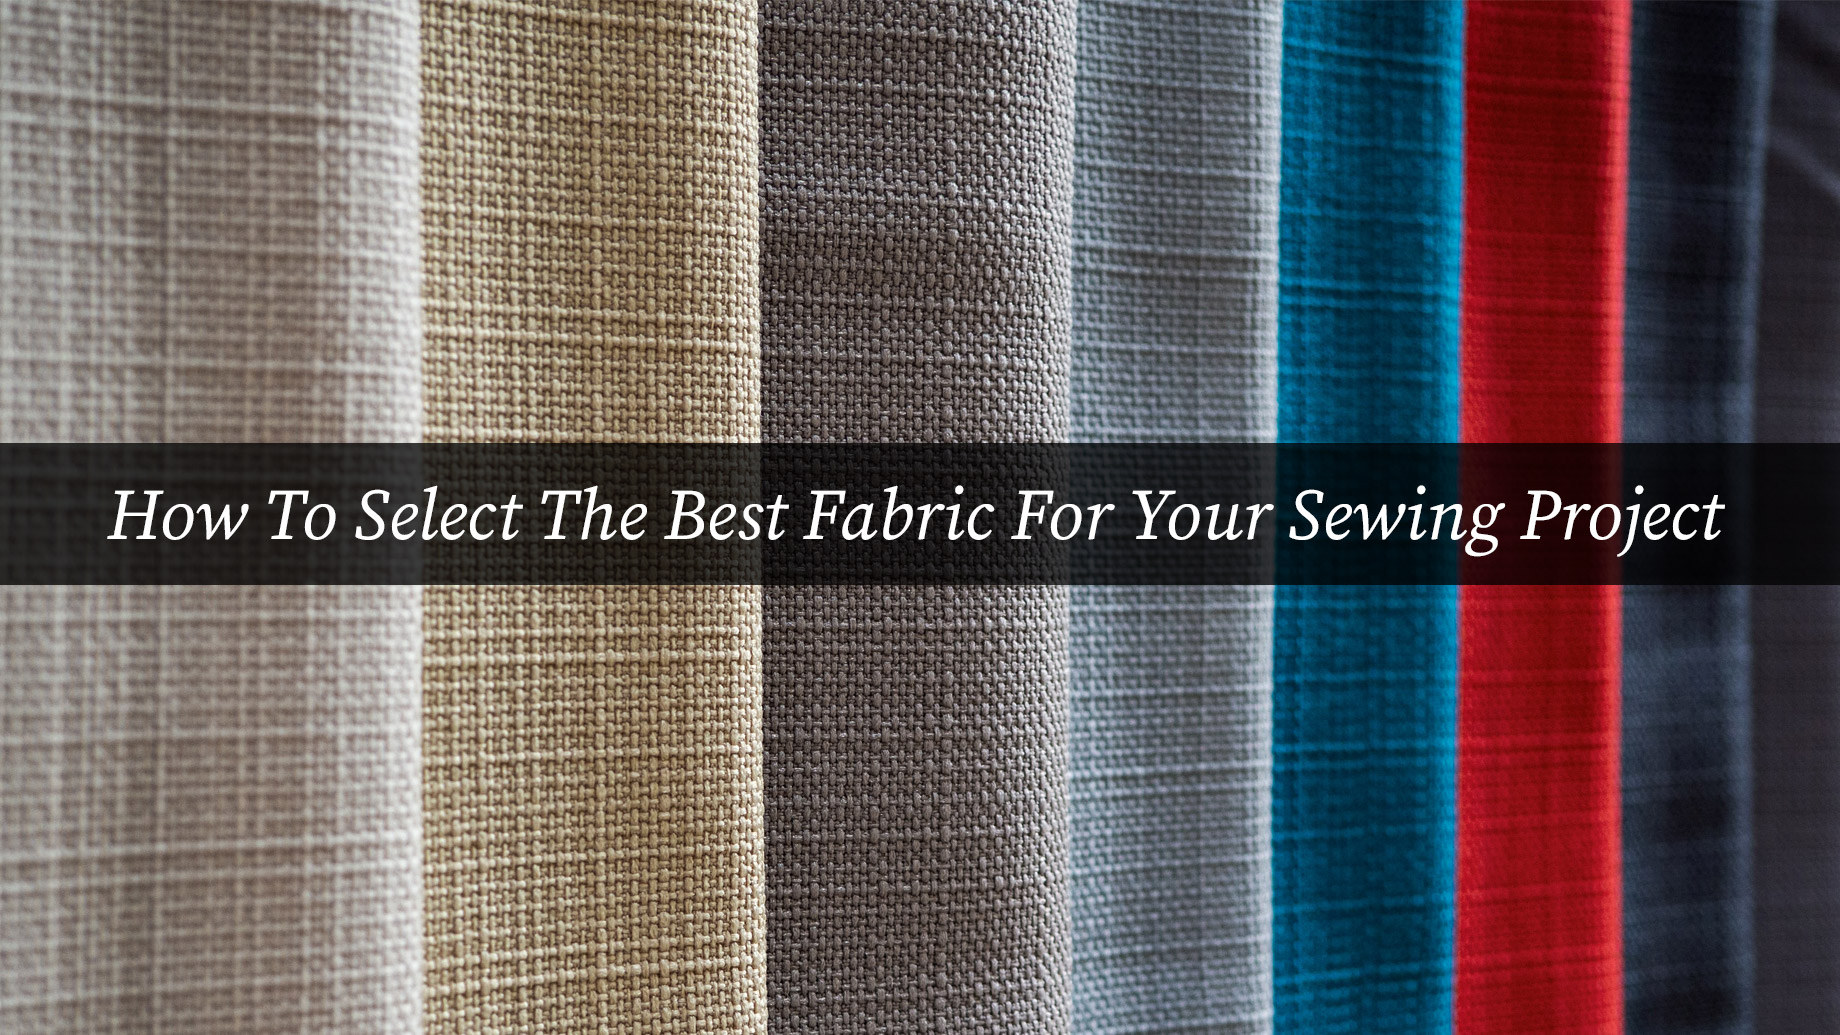 How To Select The Best Fabric For Your Sewing Project